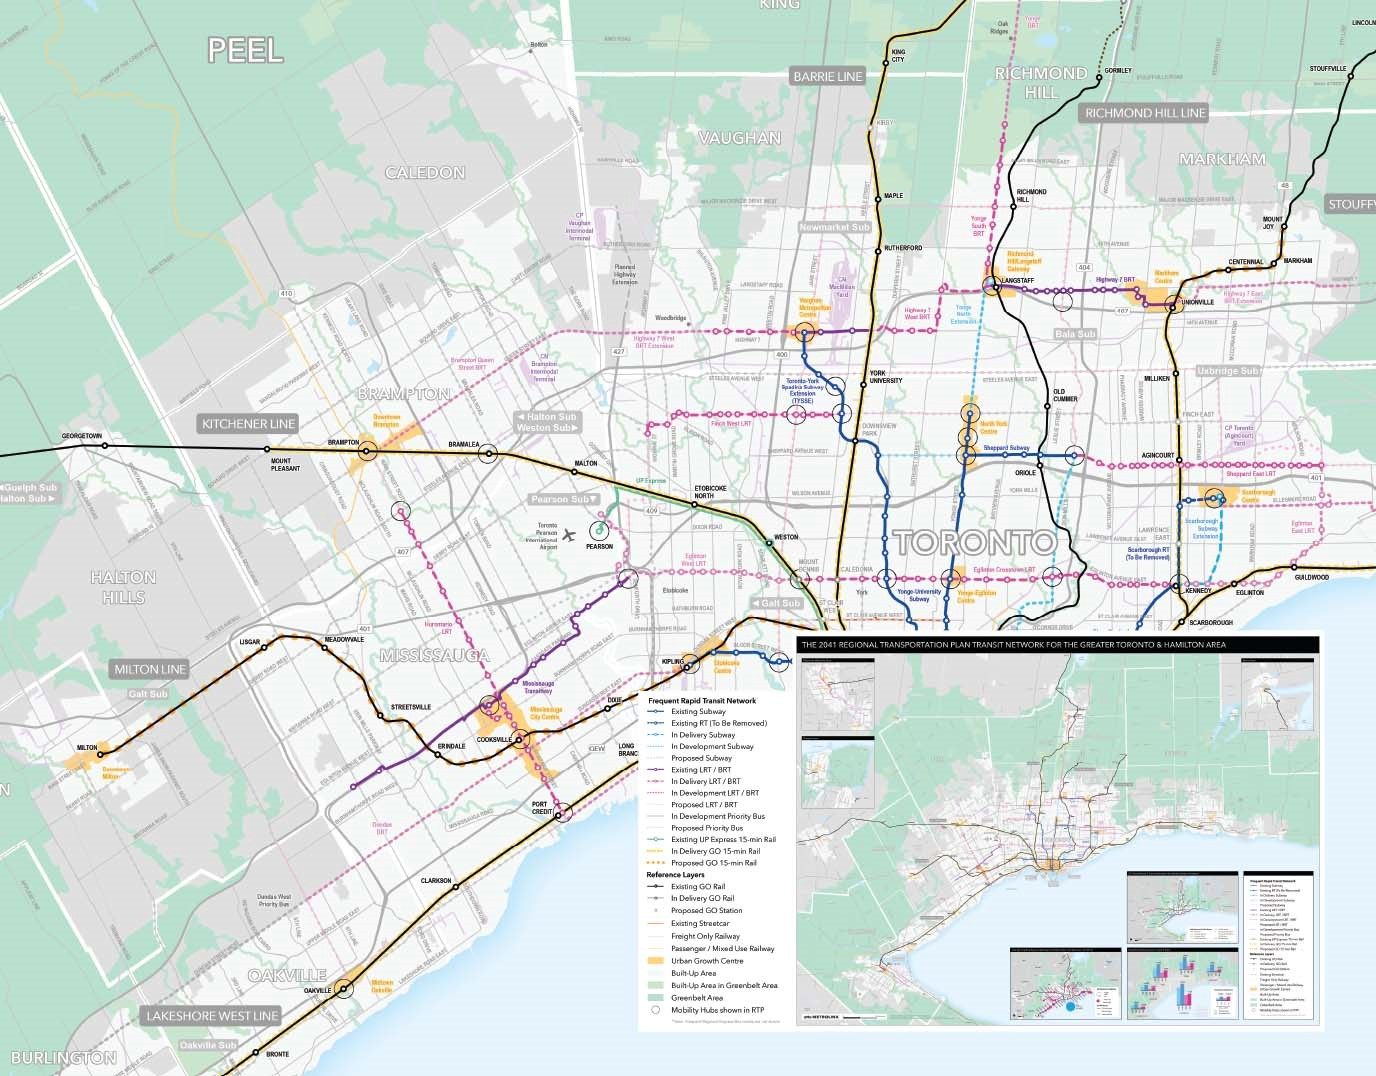 """A copy of the April map from Esri Canada's 2019 Map Calendar, entitled """"2041 Regional Transportation Plan Network Map"""" by Metrolinx. The map illustrates transit routes from the 2041 Regional Transportation Plan for the Greater Toronto and Hamilton Area. The transit network symbology uses dashing to show route status and colours to show route types."""